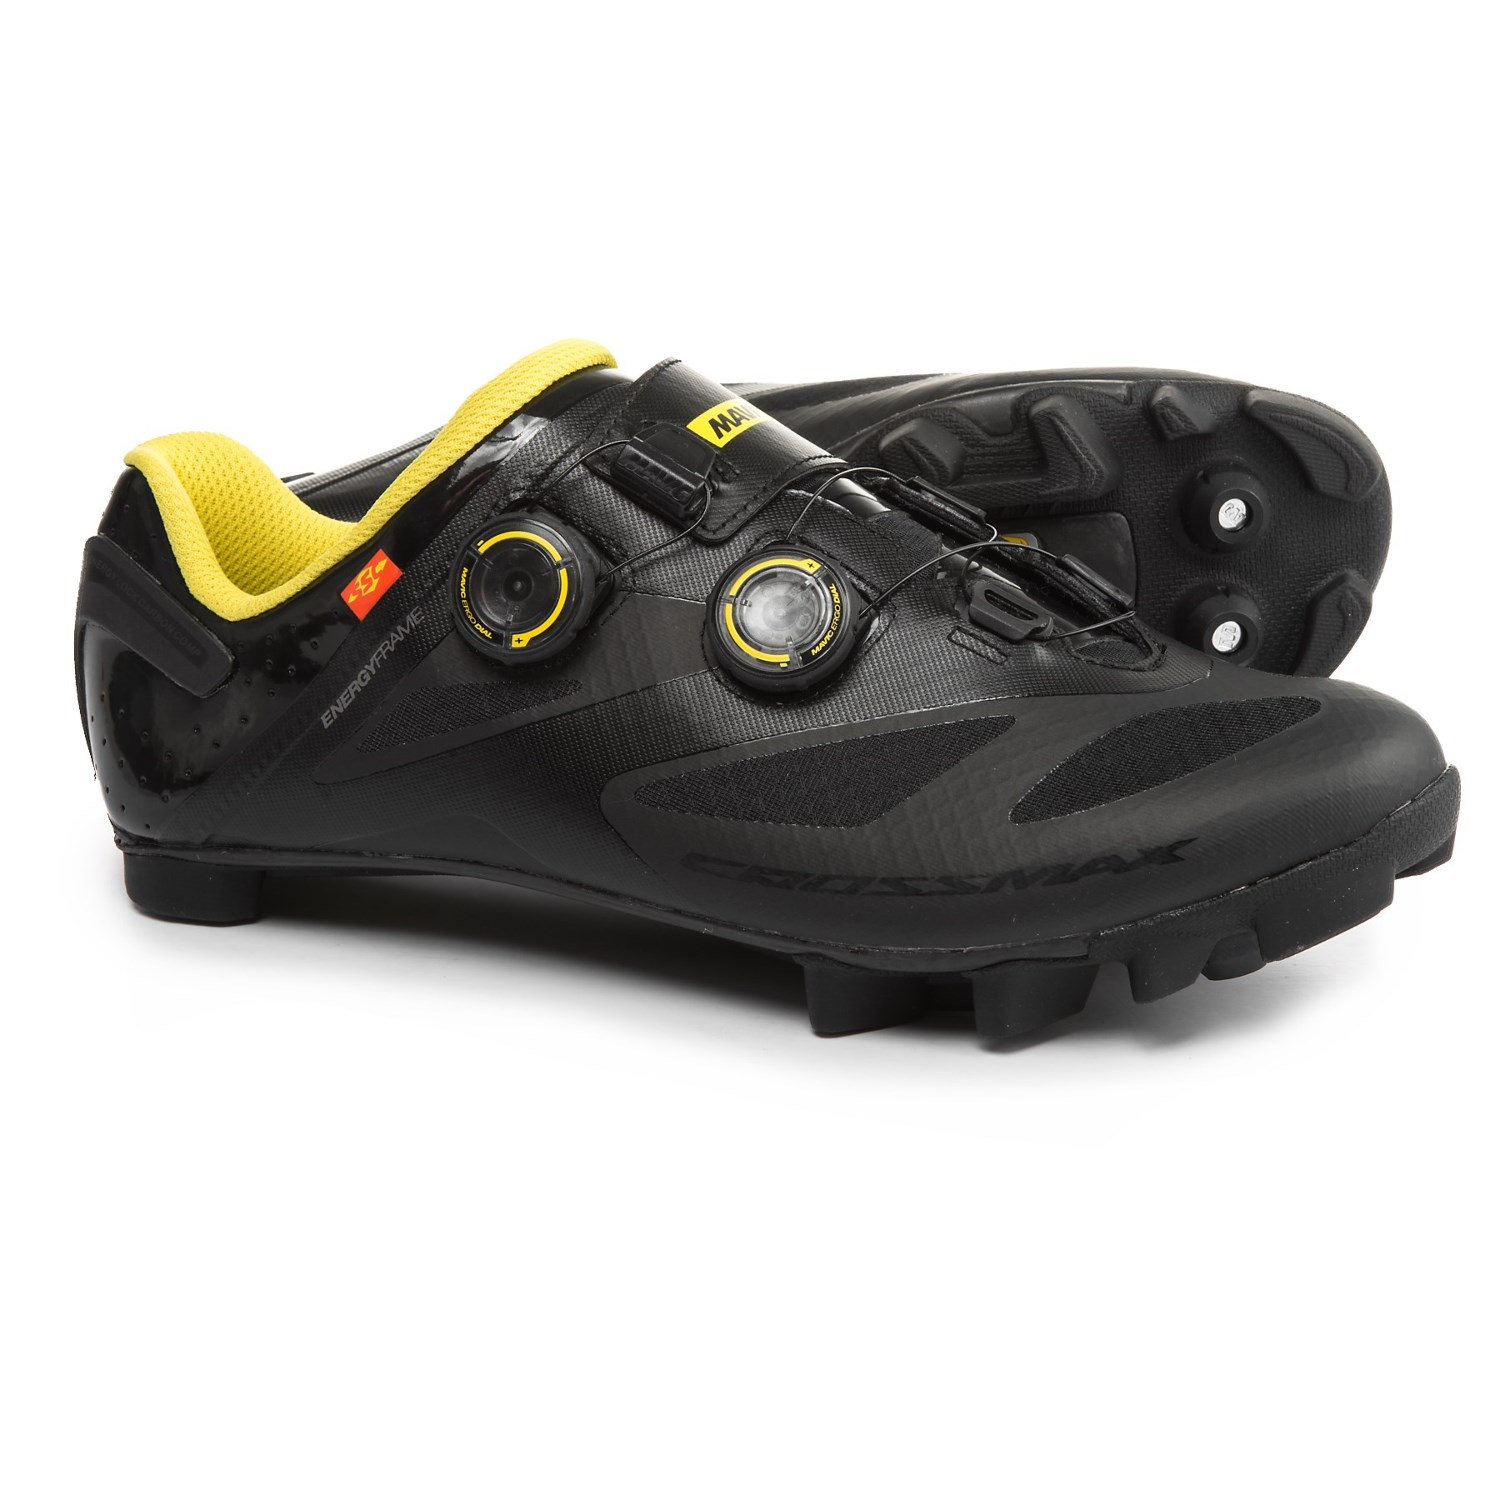 Spd Touring Shoes Review